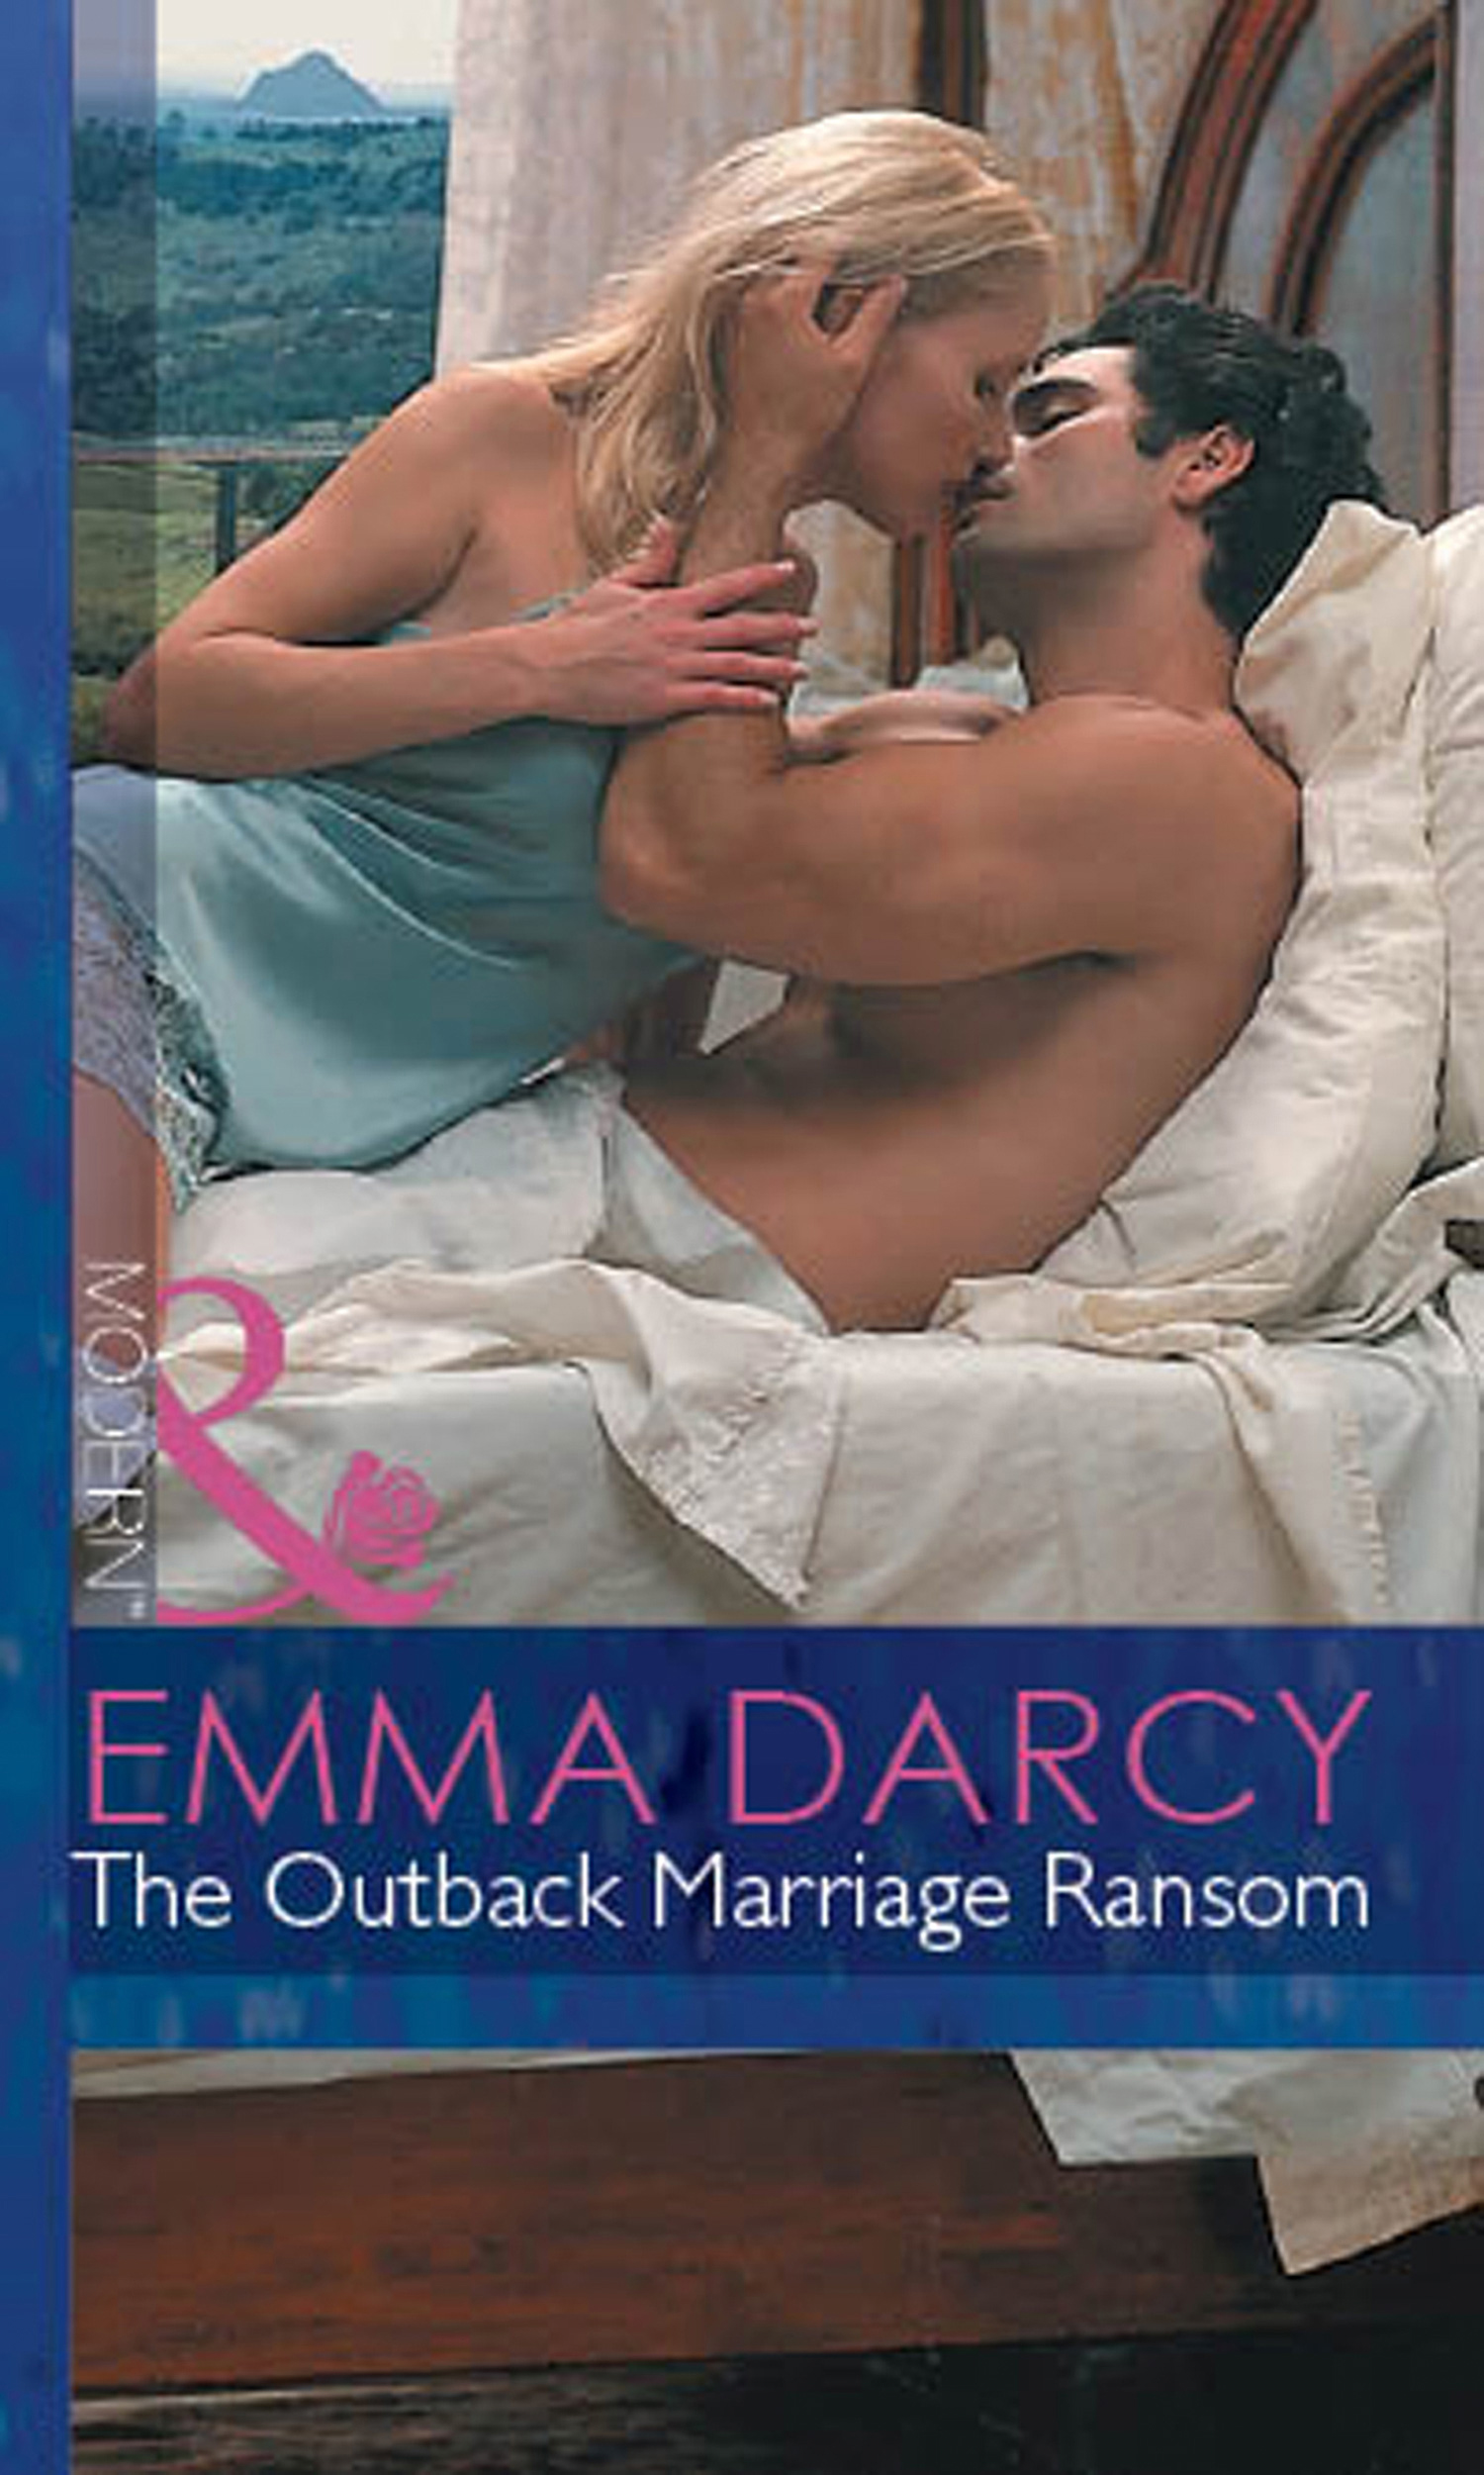 The Outback Marriage Ransom